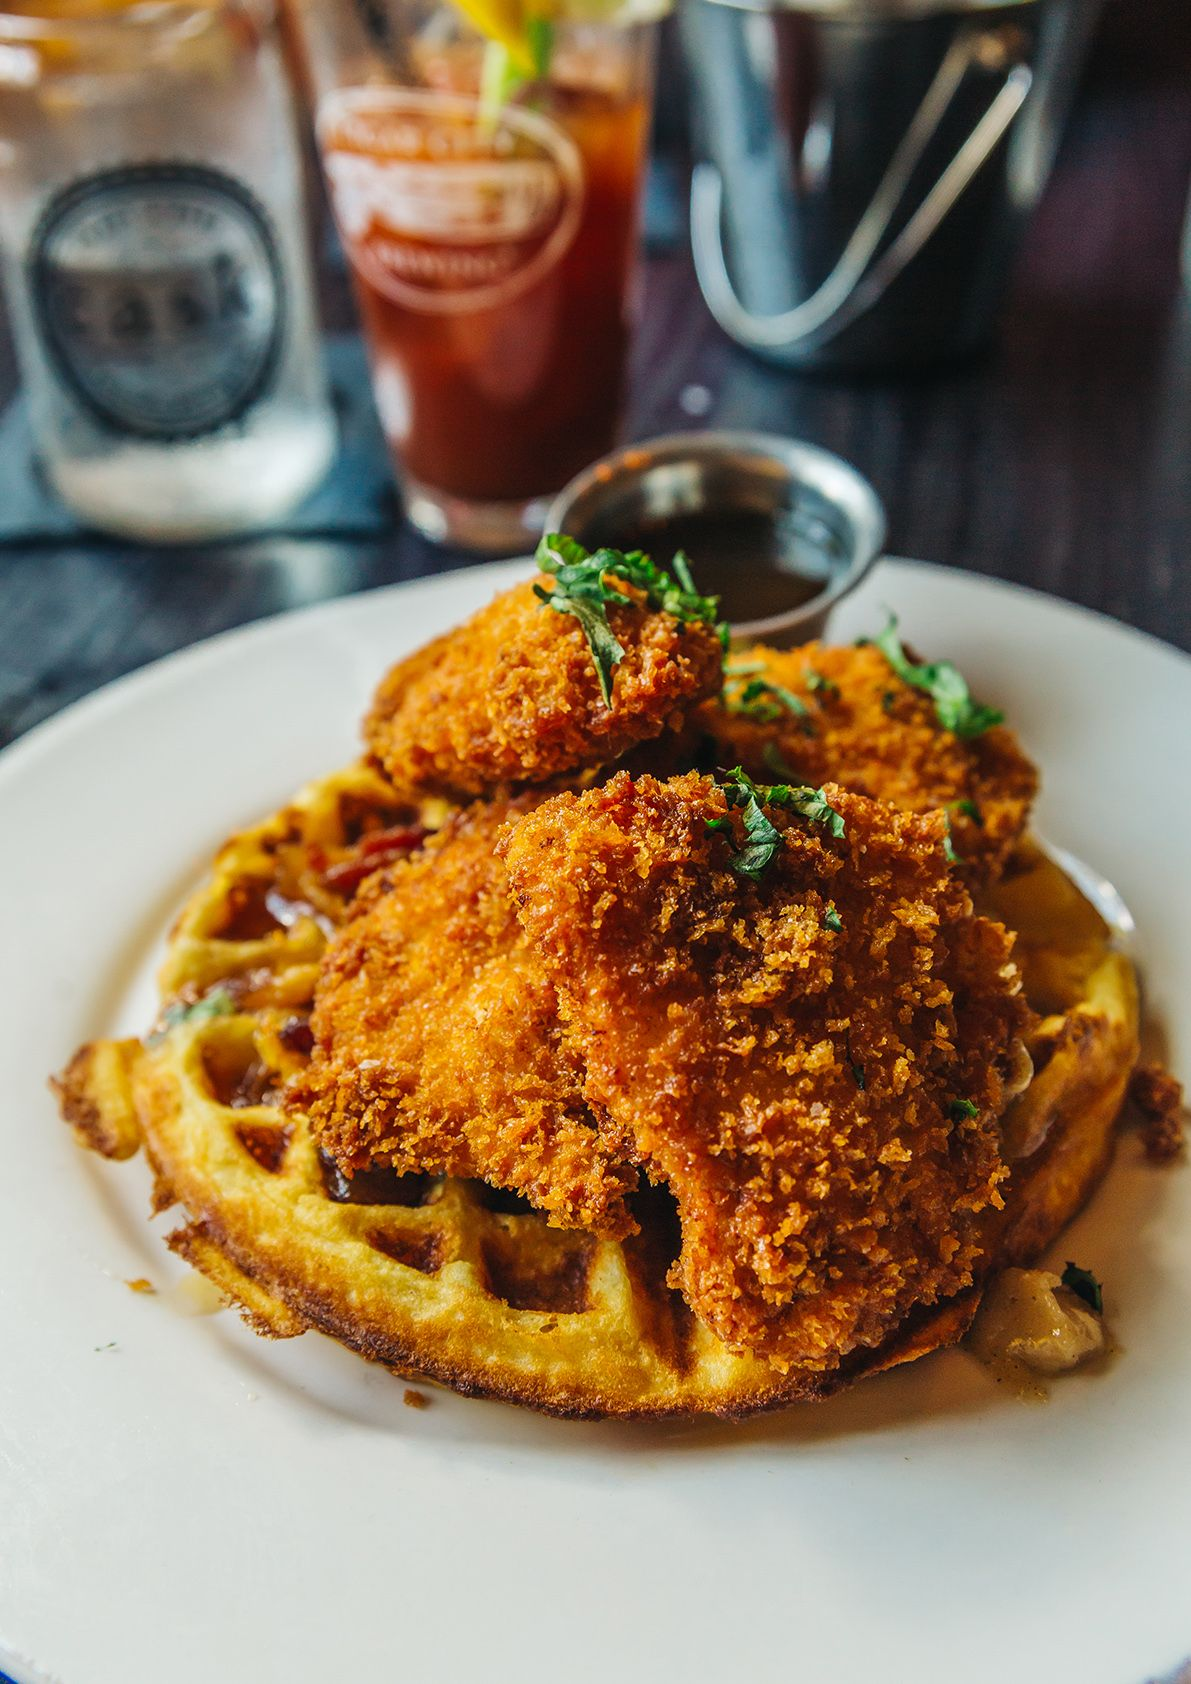 Try the chicken & waffles at Cask in Tampa, Florida!